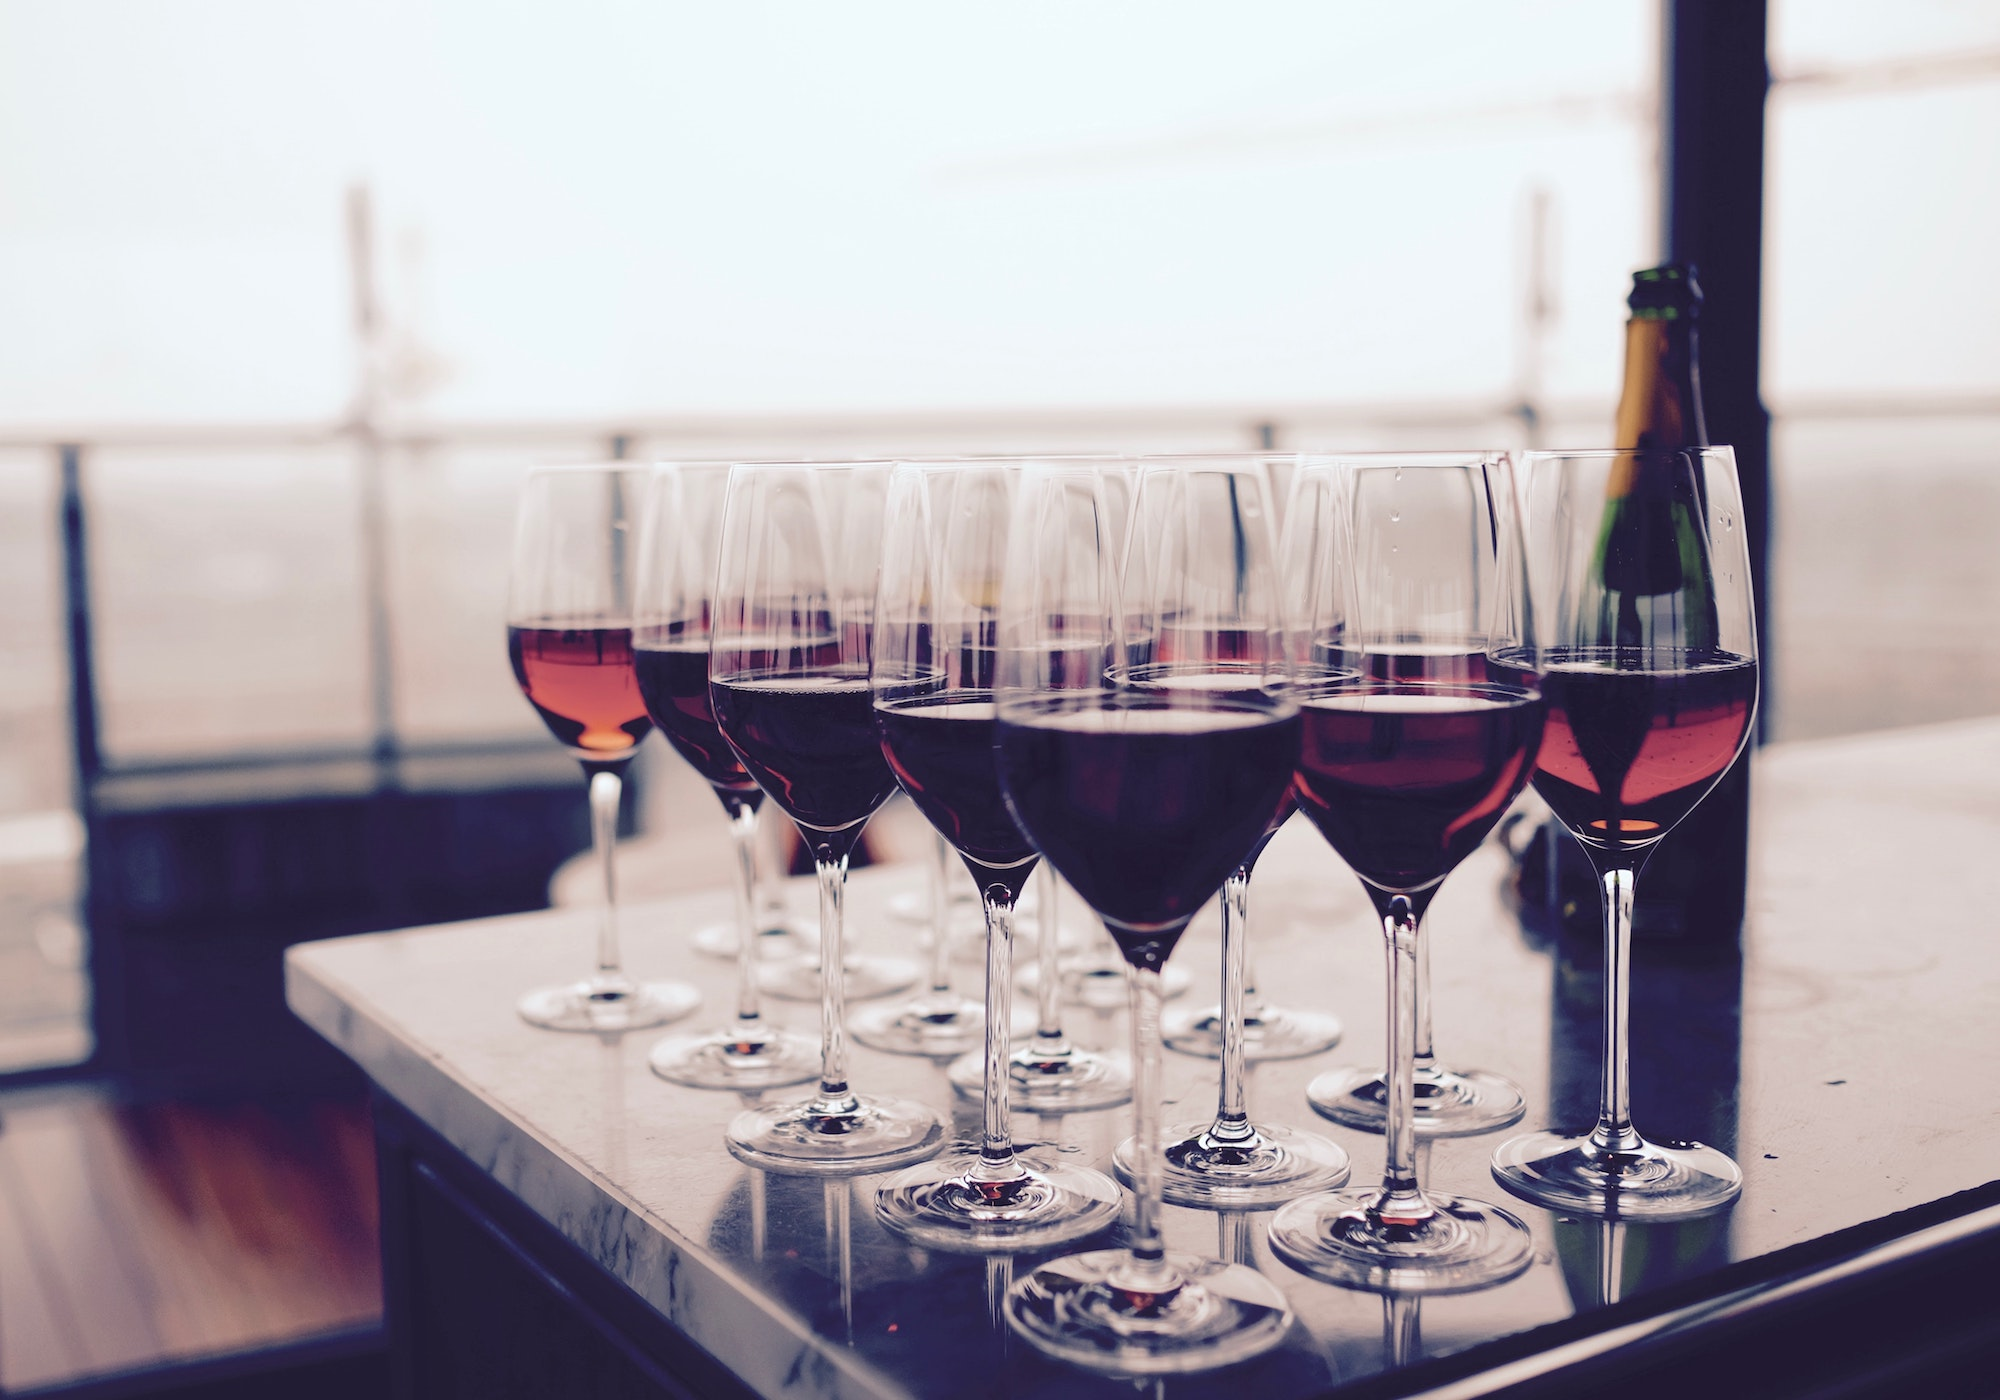 Thumb image for the post on Is Your Wine Habit Becoming An Addiction?